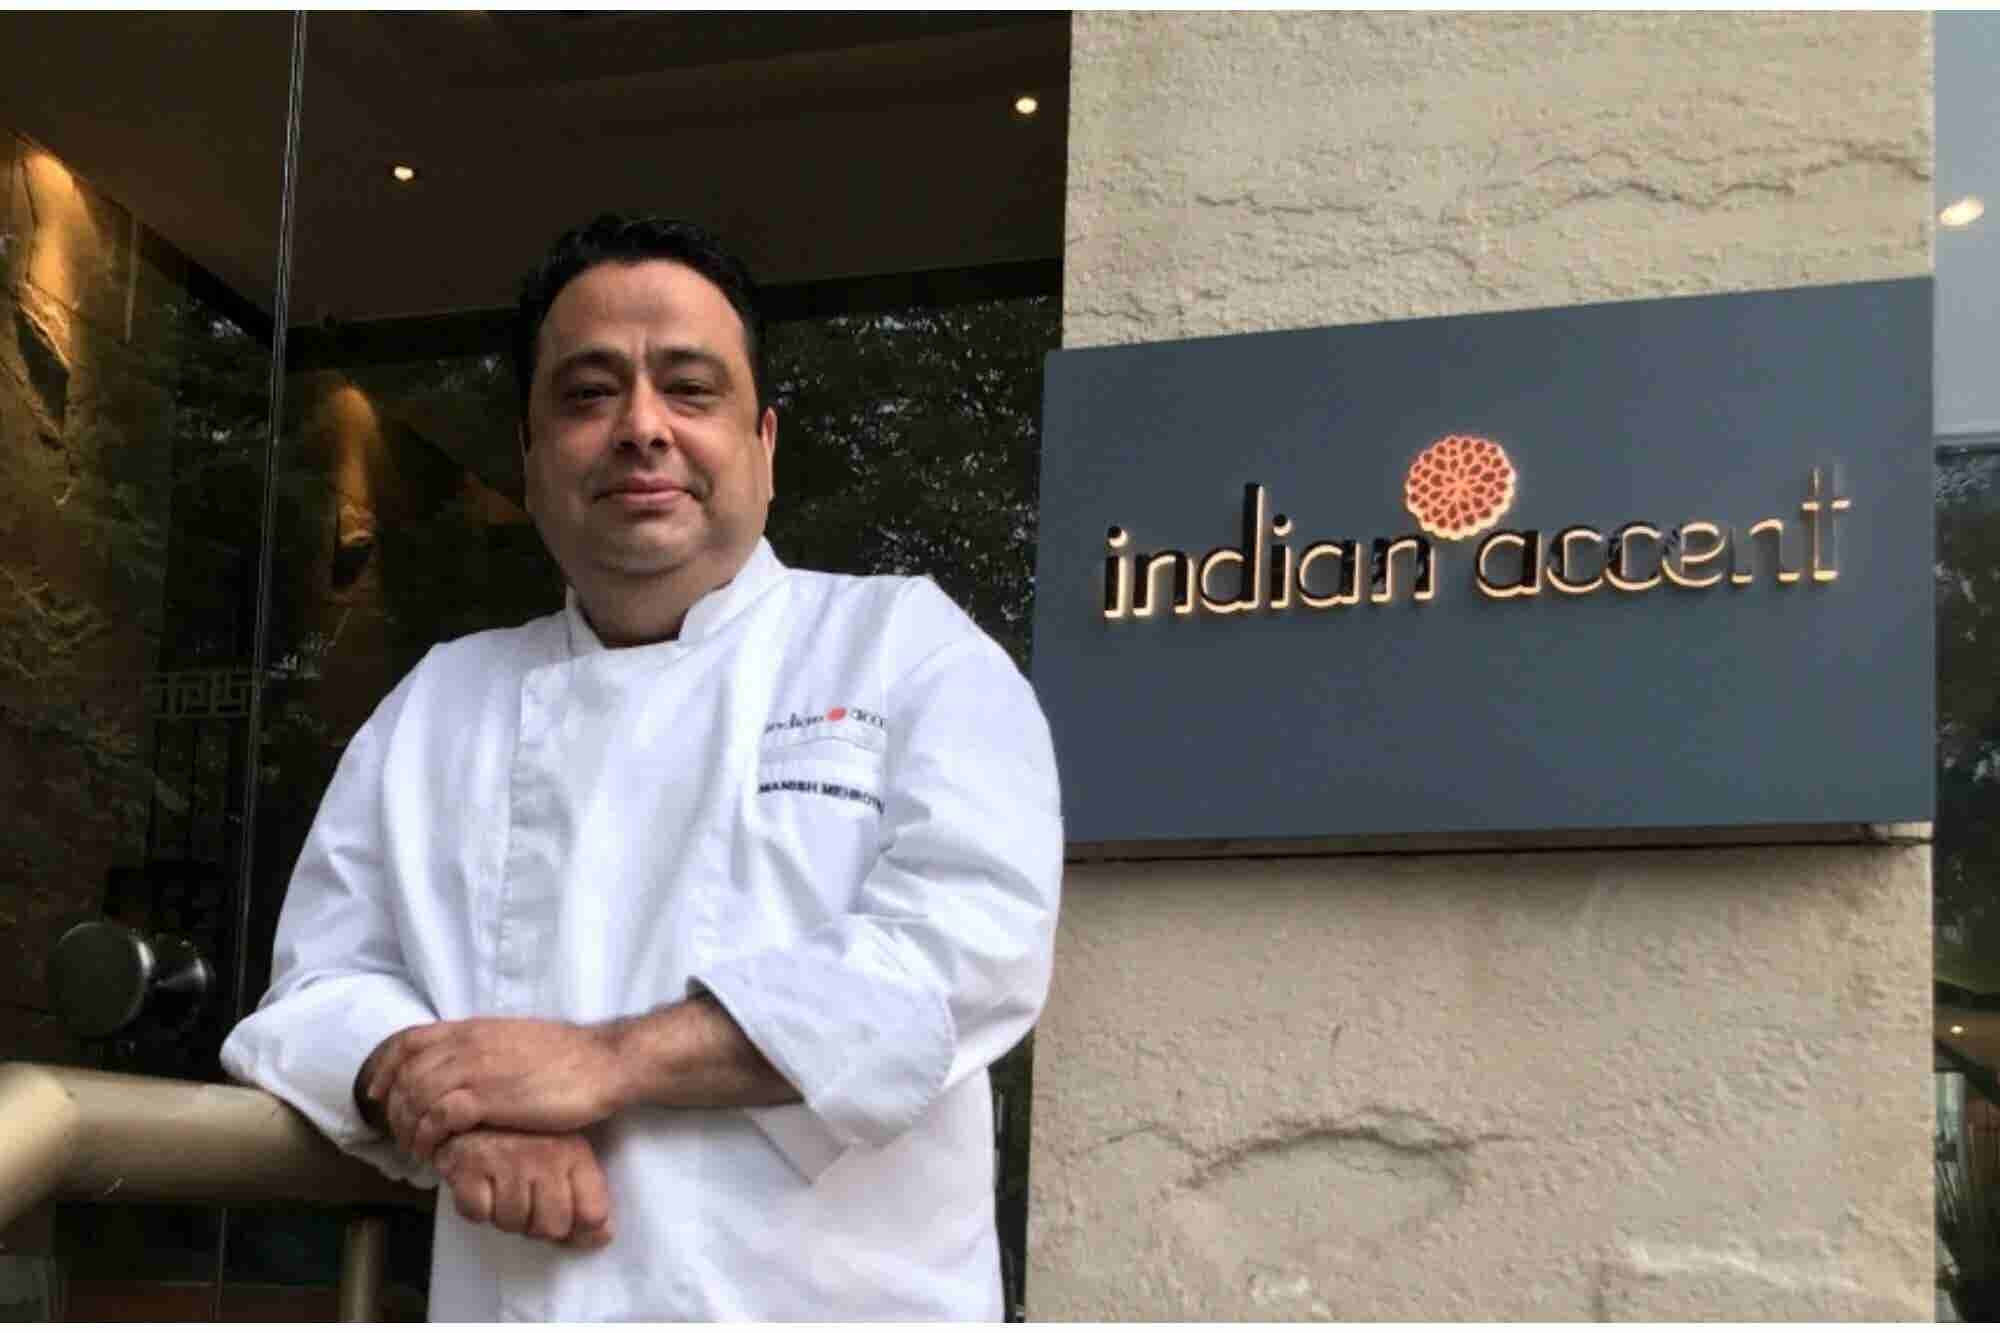 What Makes Your Food Menu Unique? Know It All From Chef Manish Mehrotra